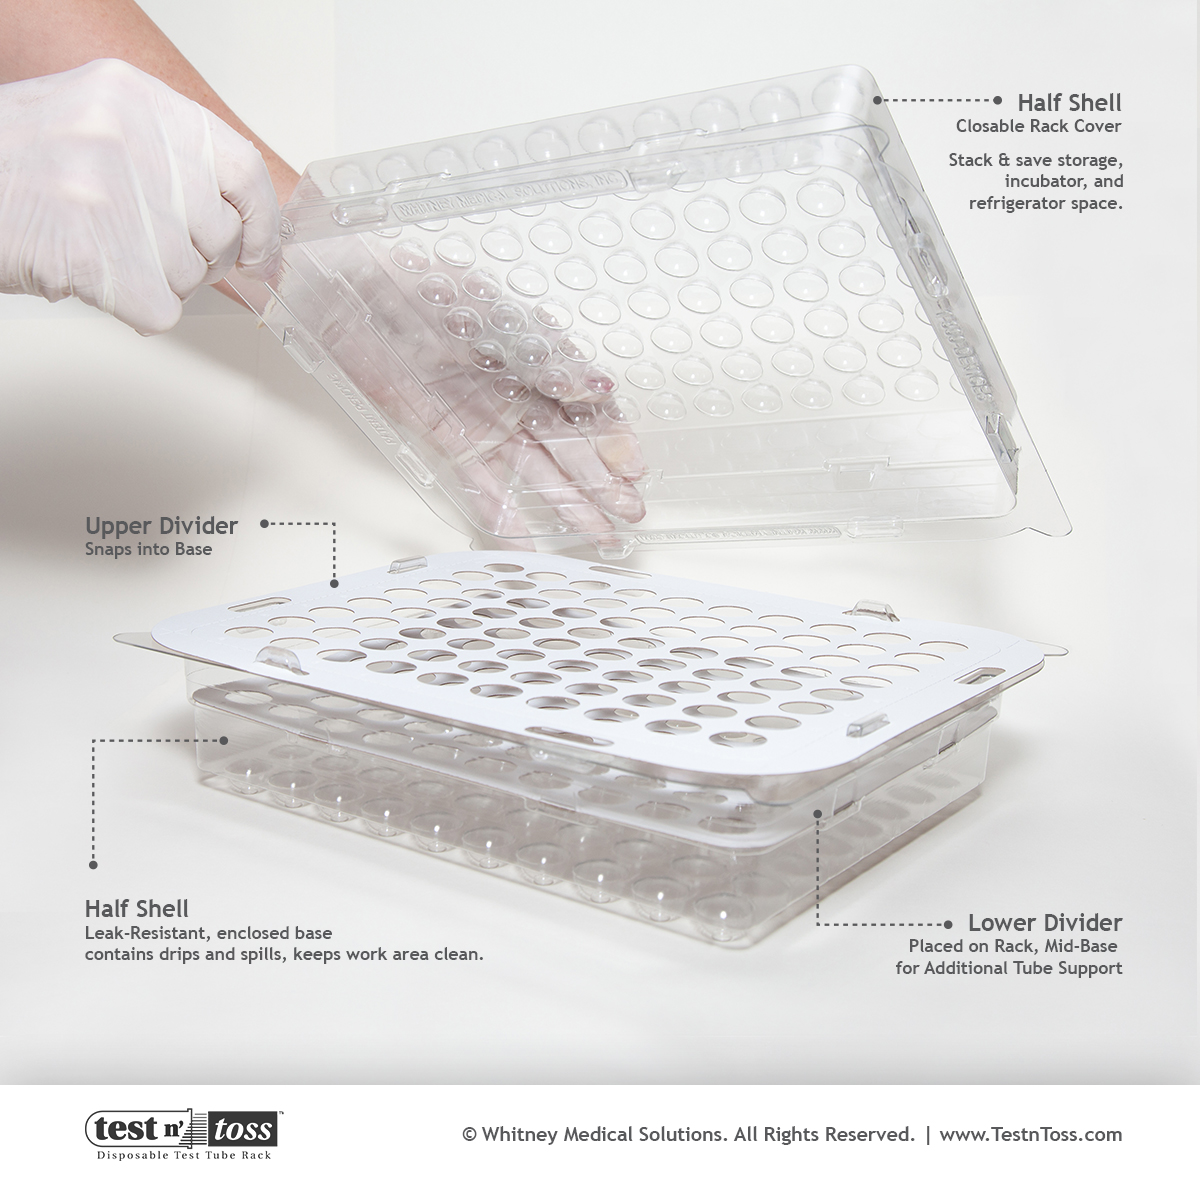 Disposable Lab Sample Test Tube Rack